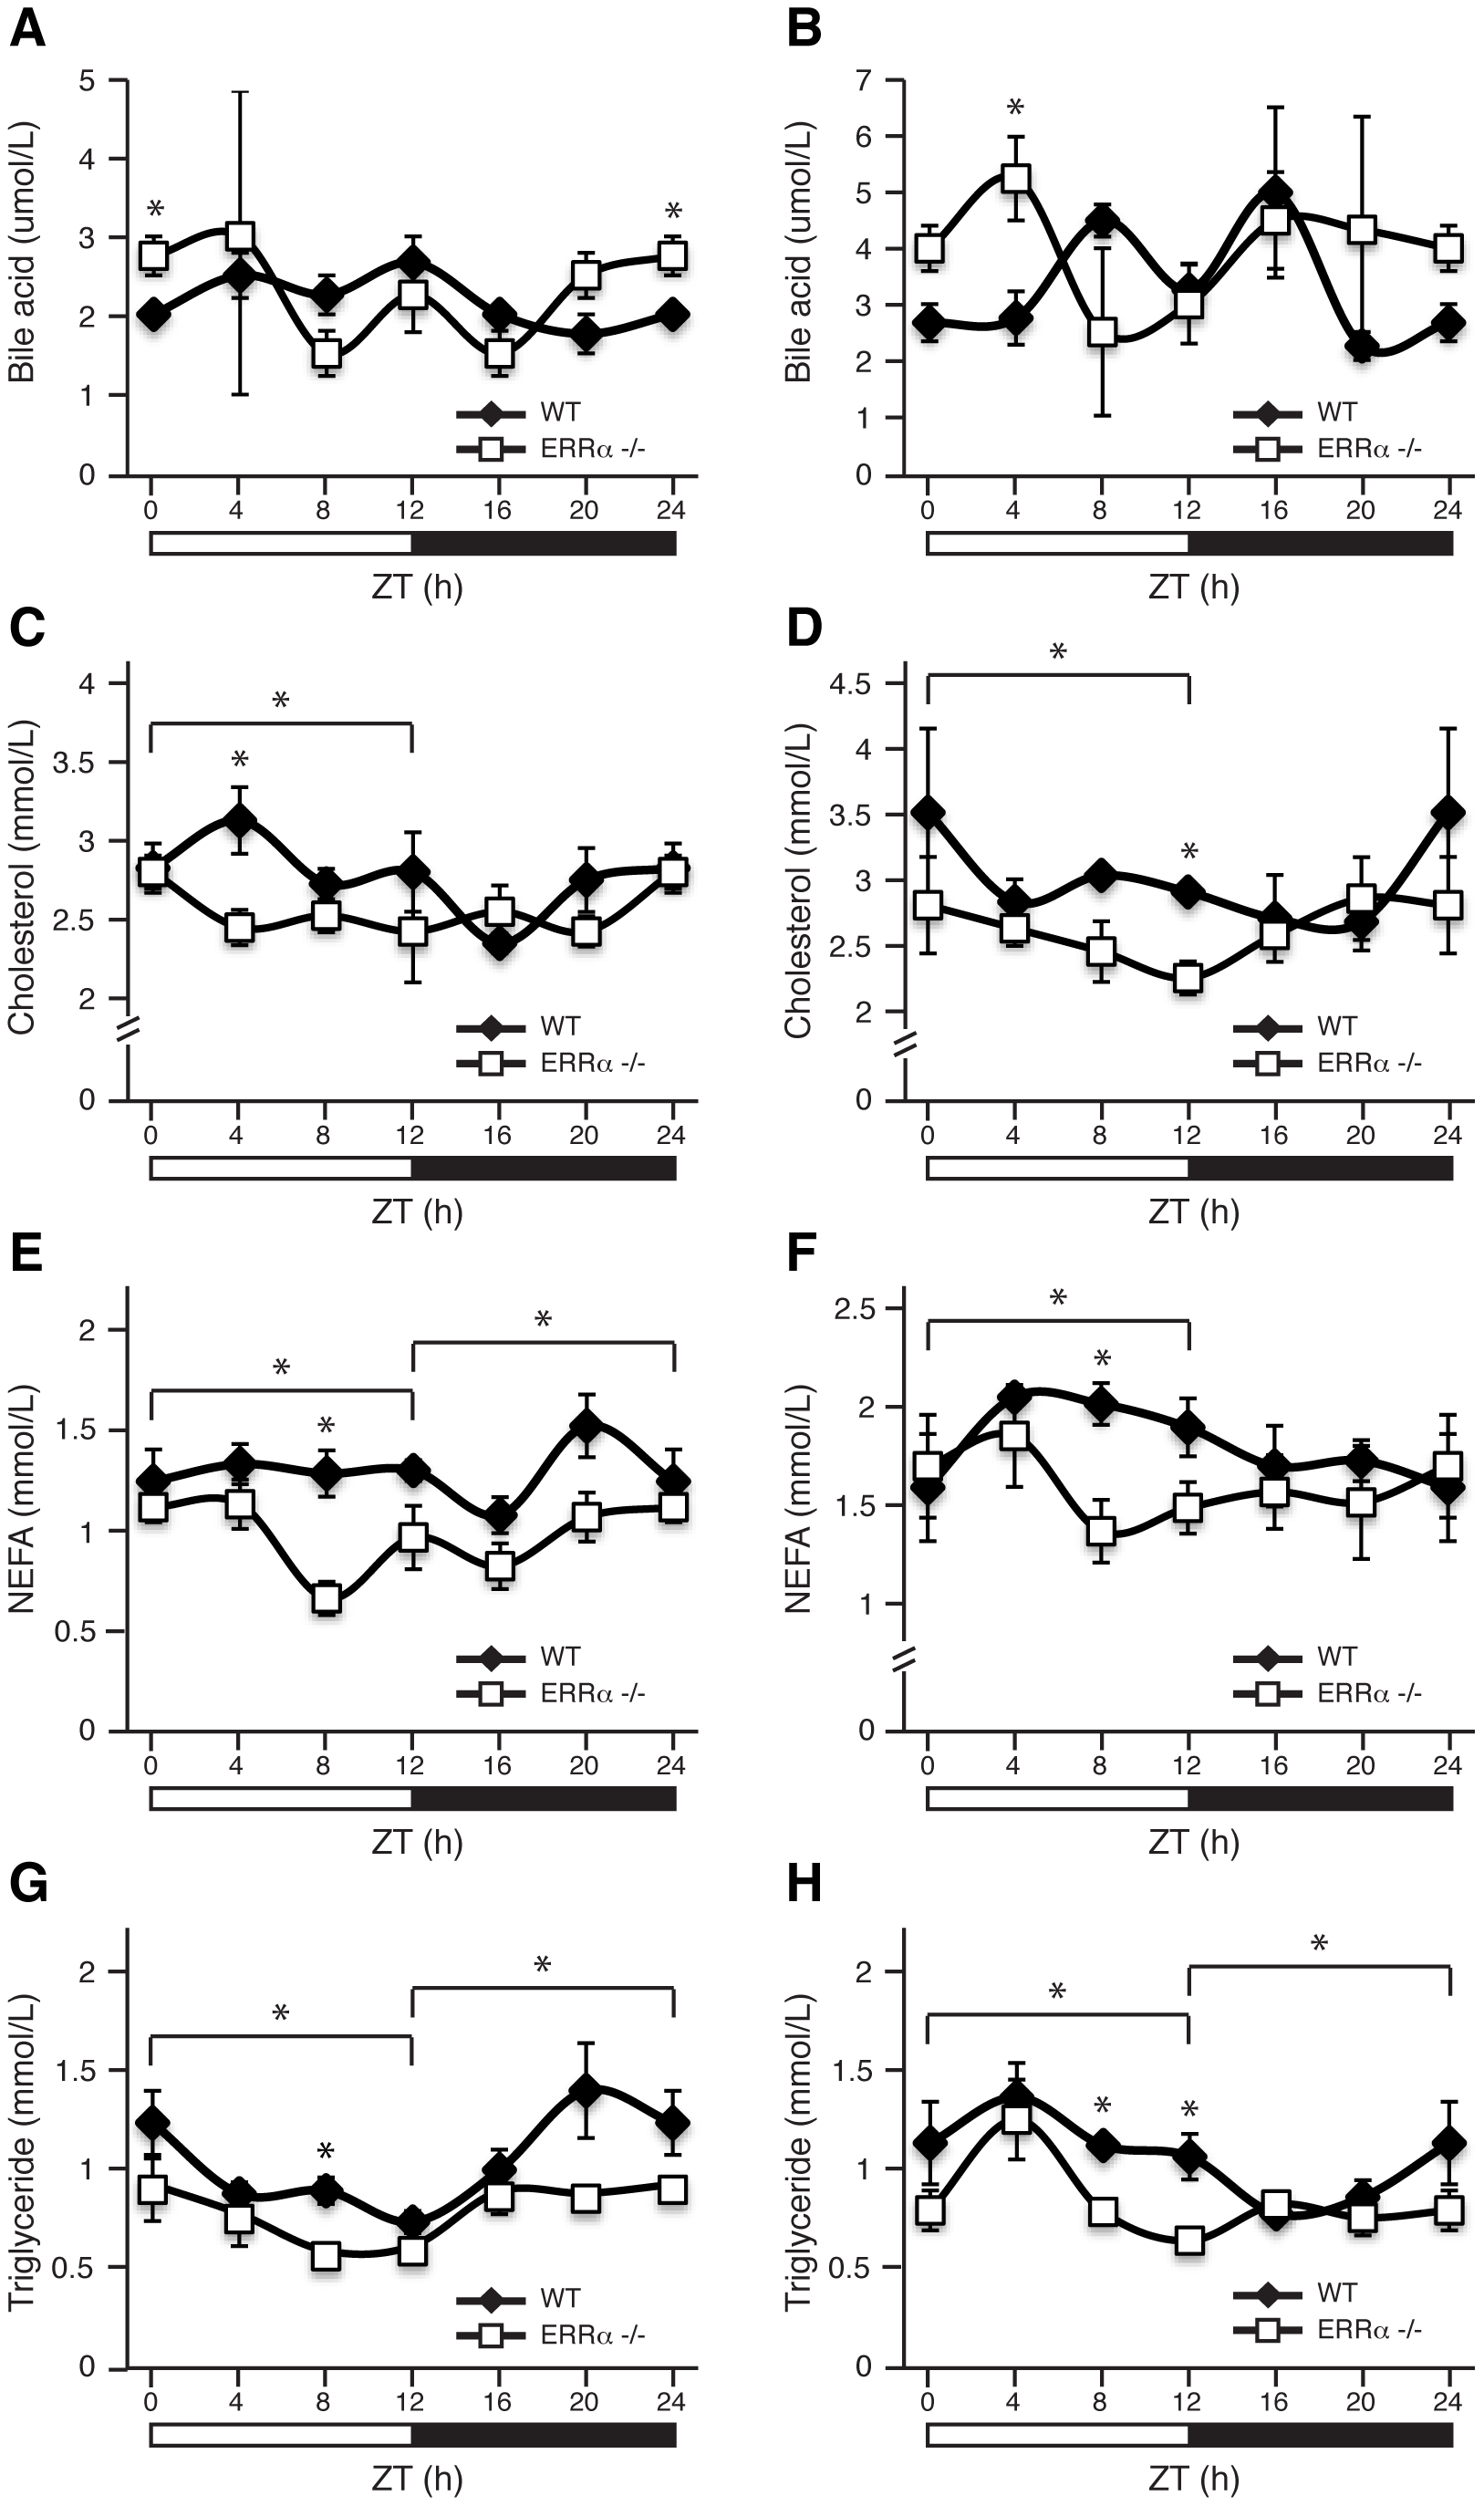 Diurnal variation of serum bile acid, cholesterol, NEFA, and triglyceride levels in WT and ERRα-null mice.